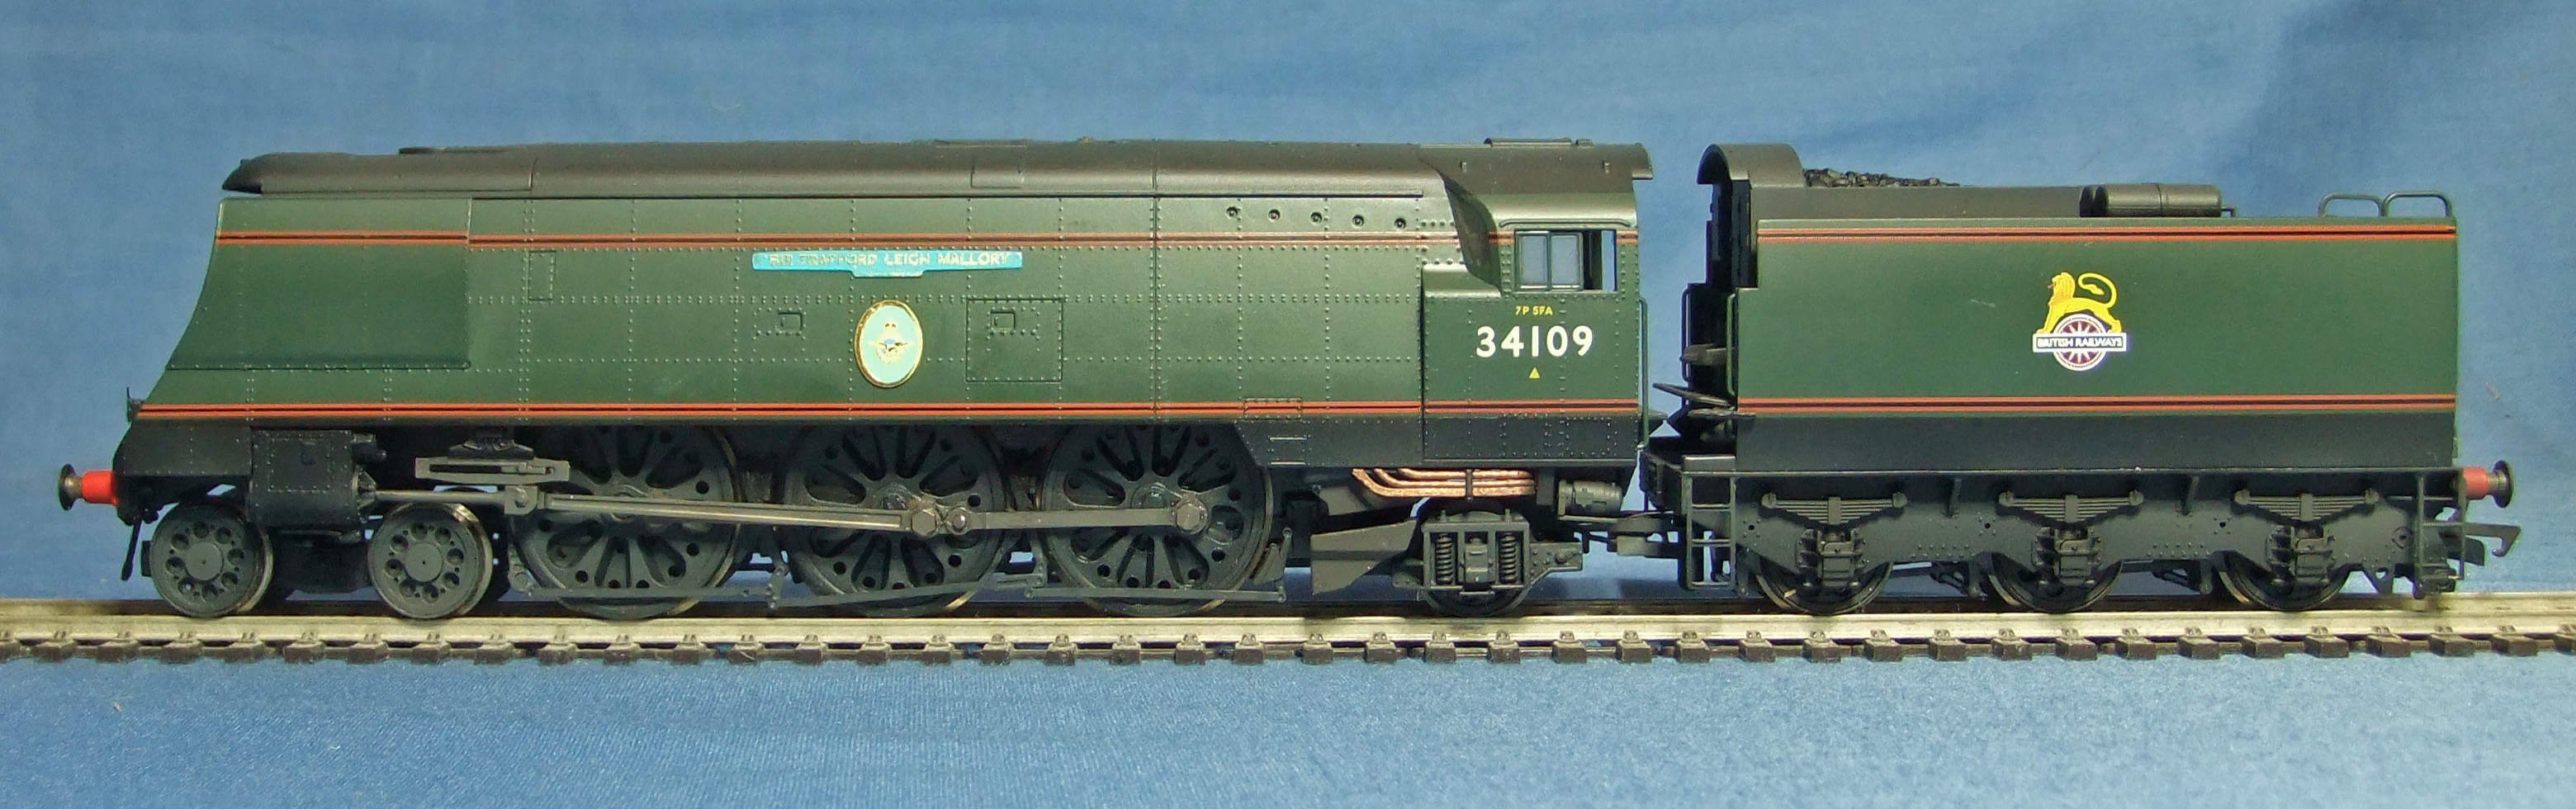 Battle of Britain Class No.34109 - 1